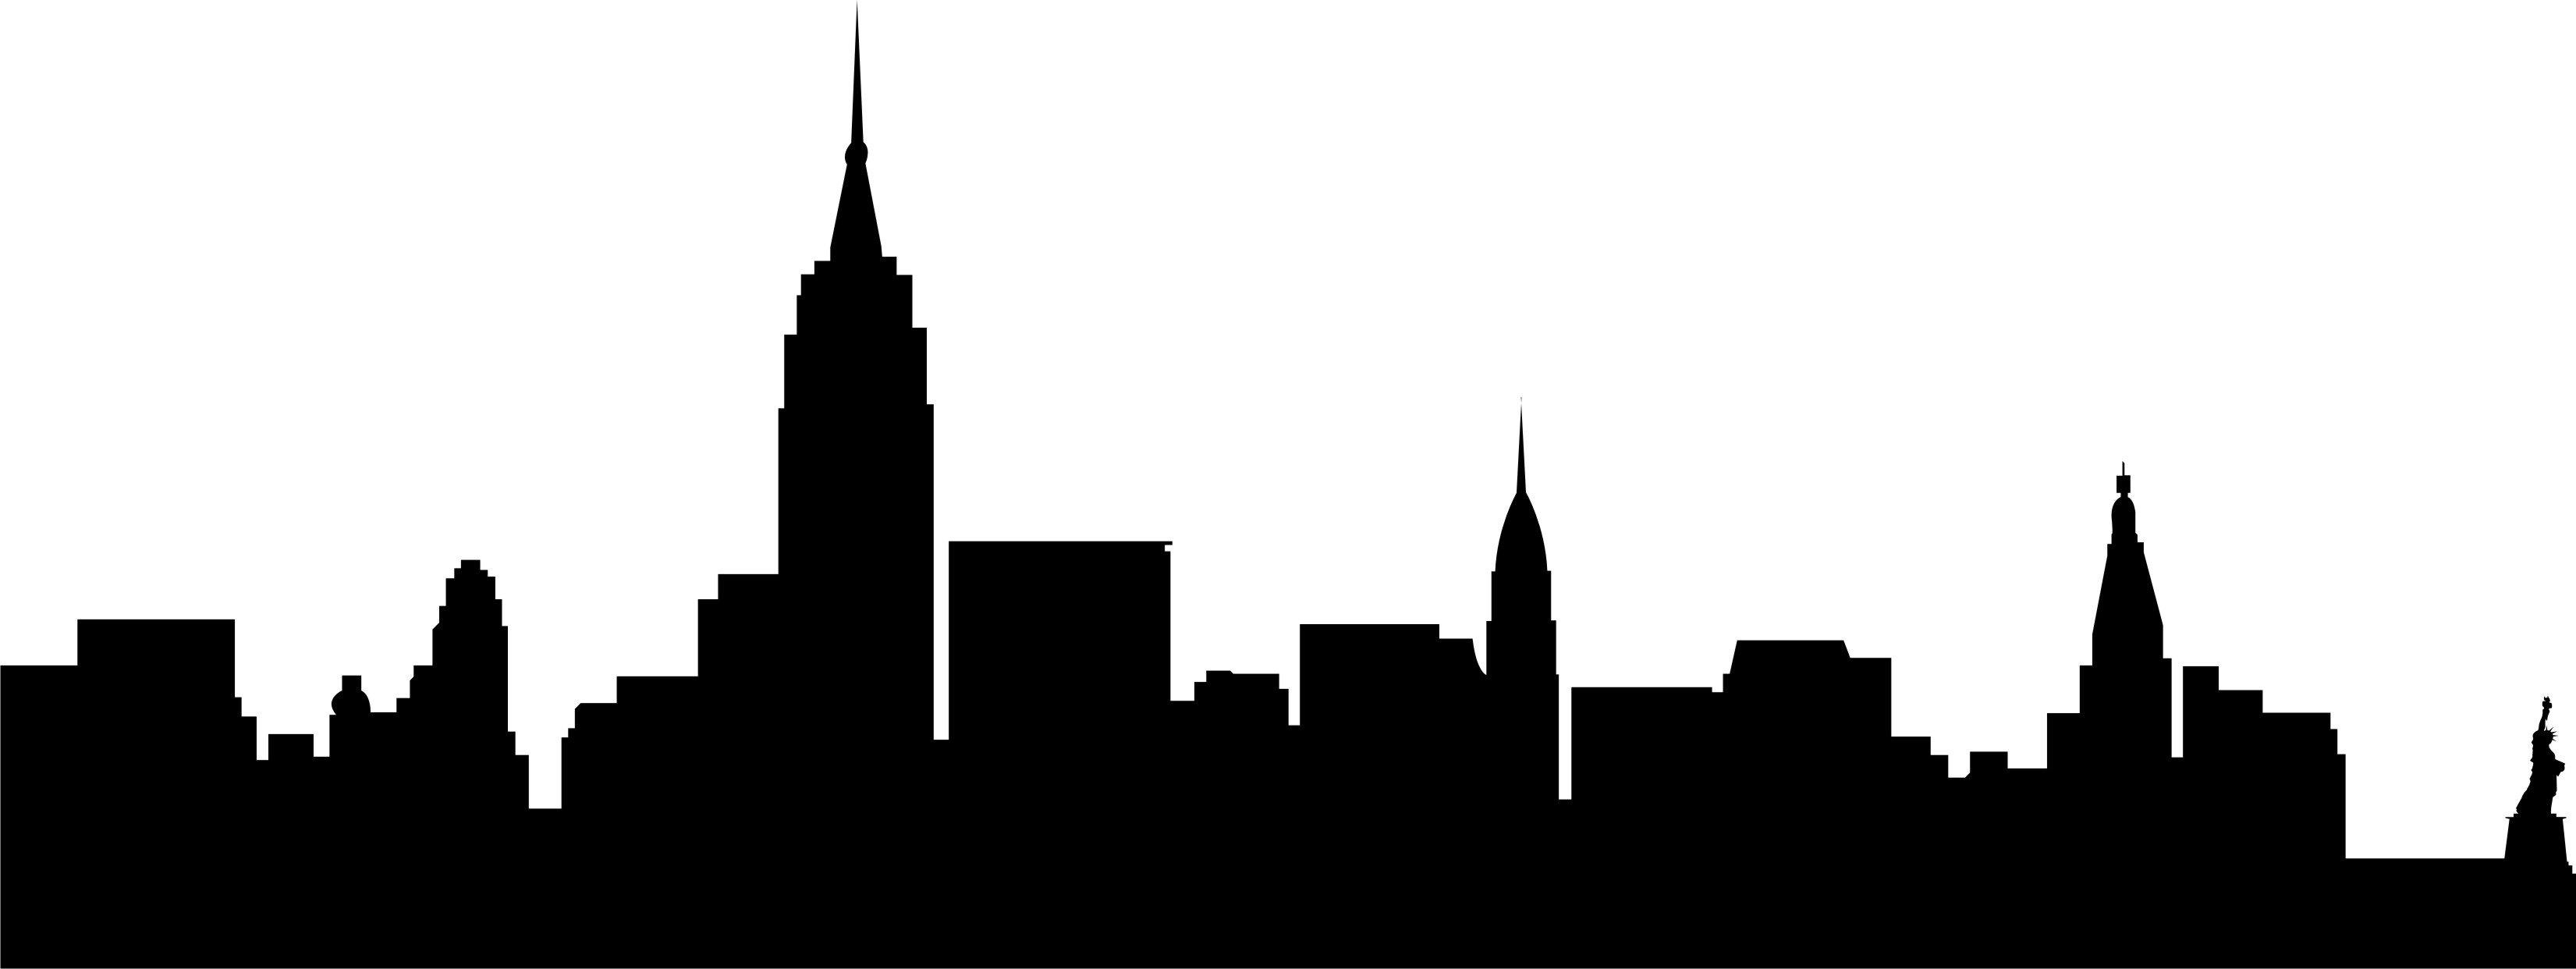 new york city clipart skyline - photo #20